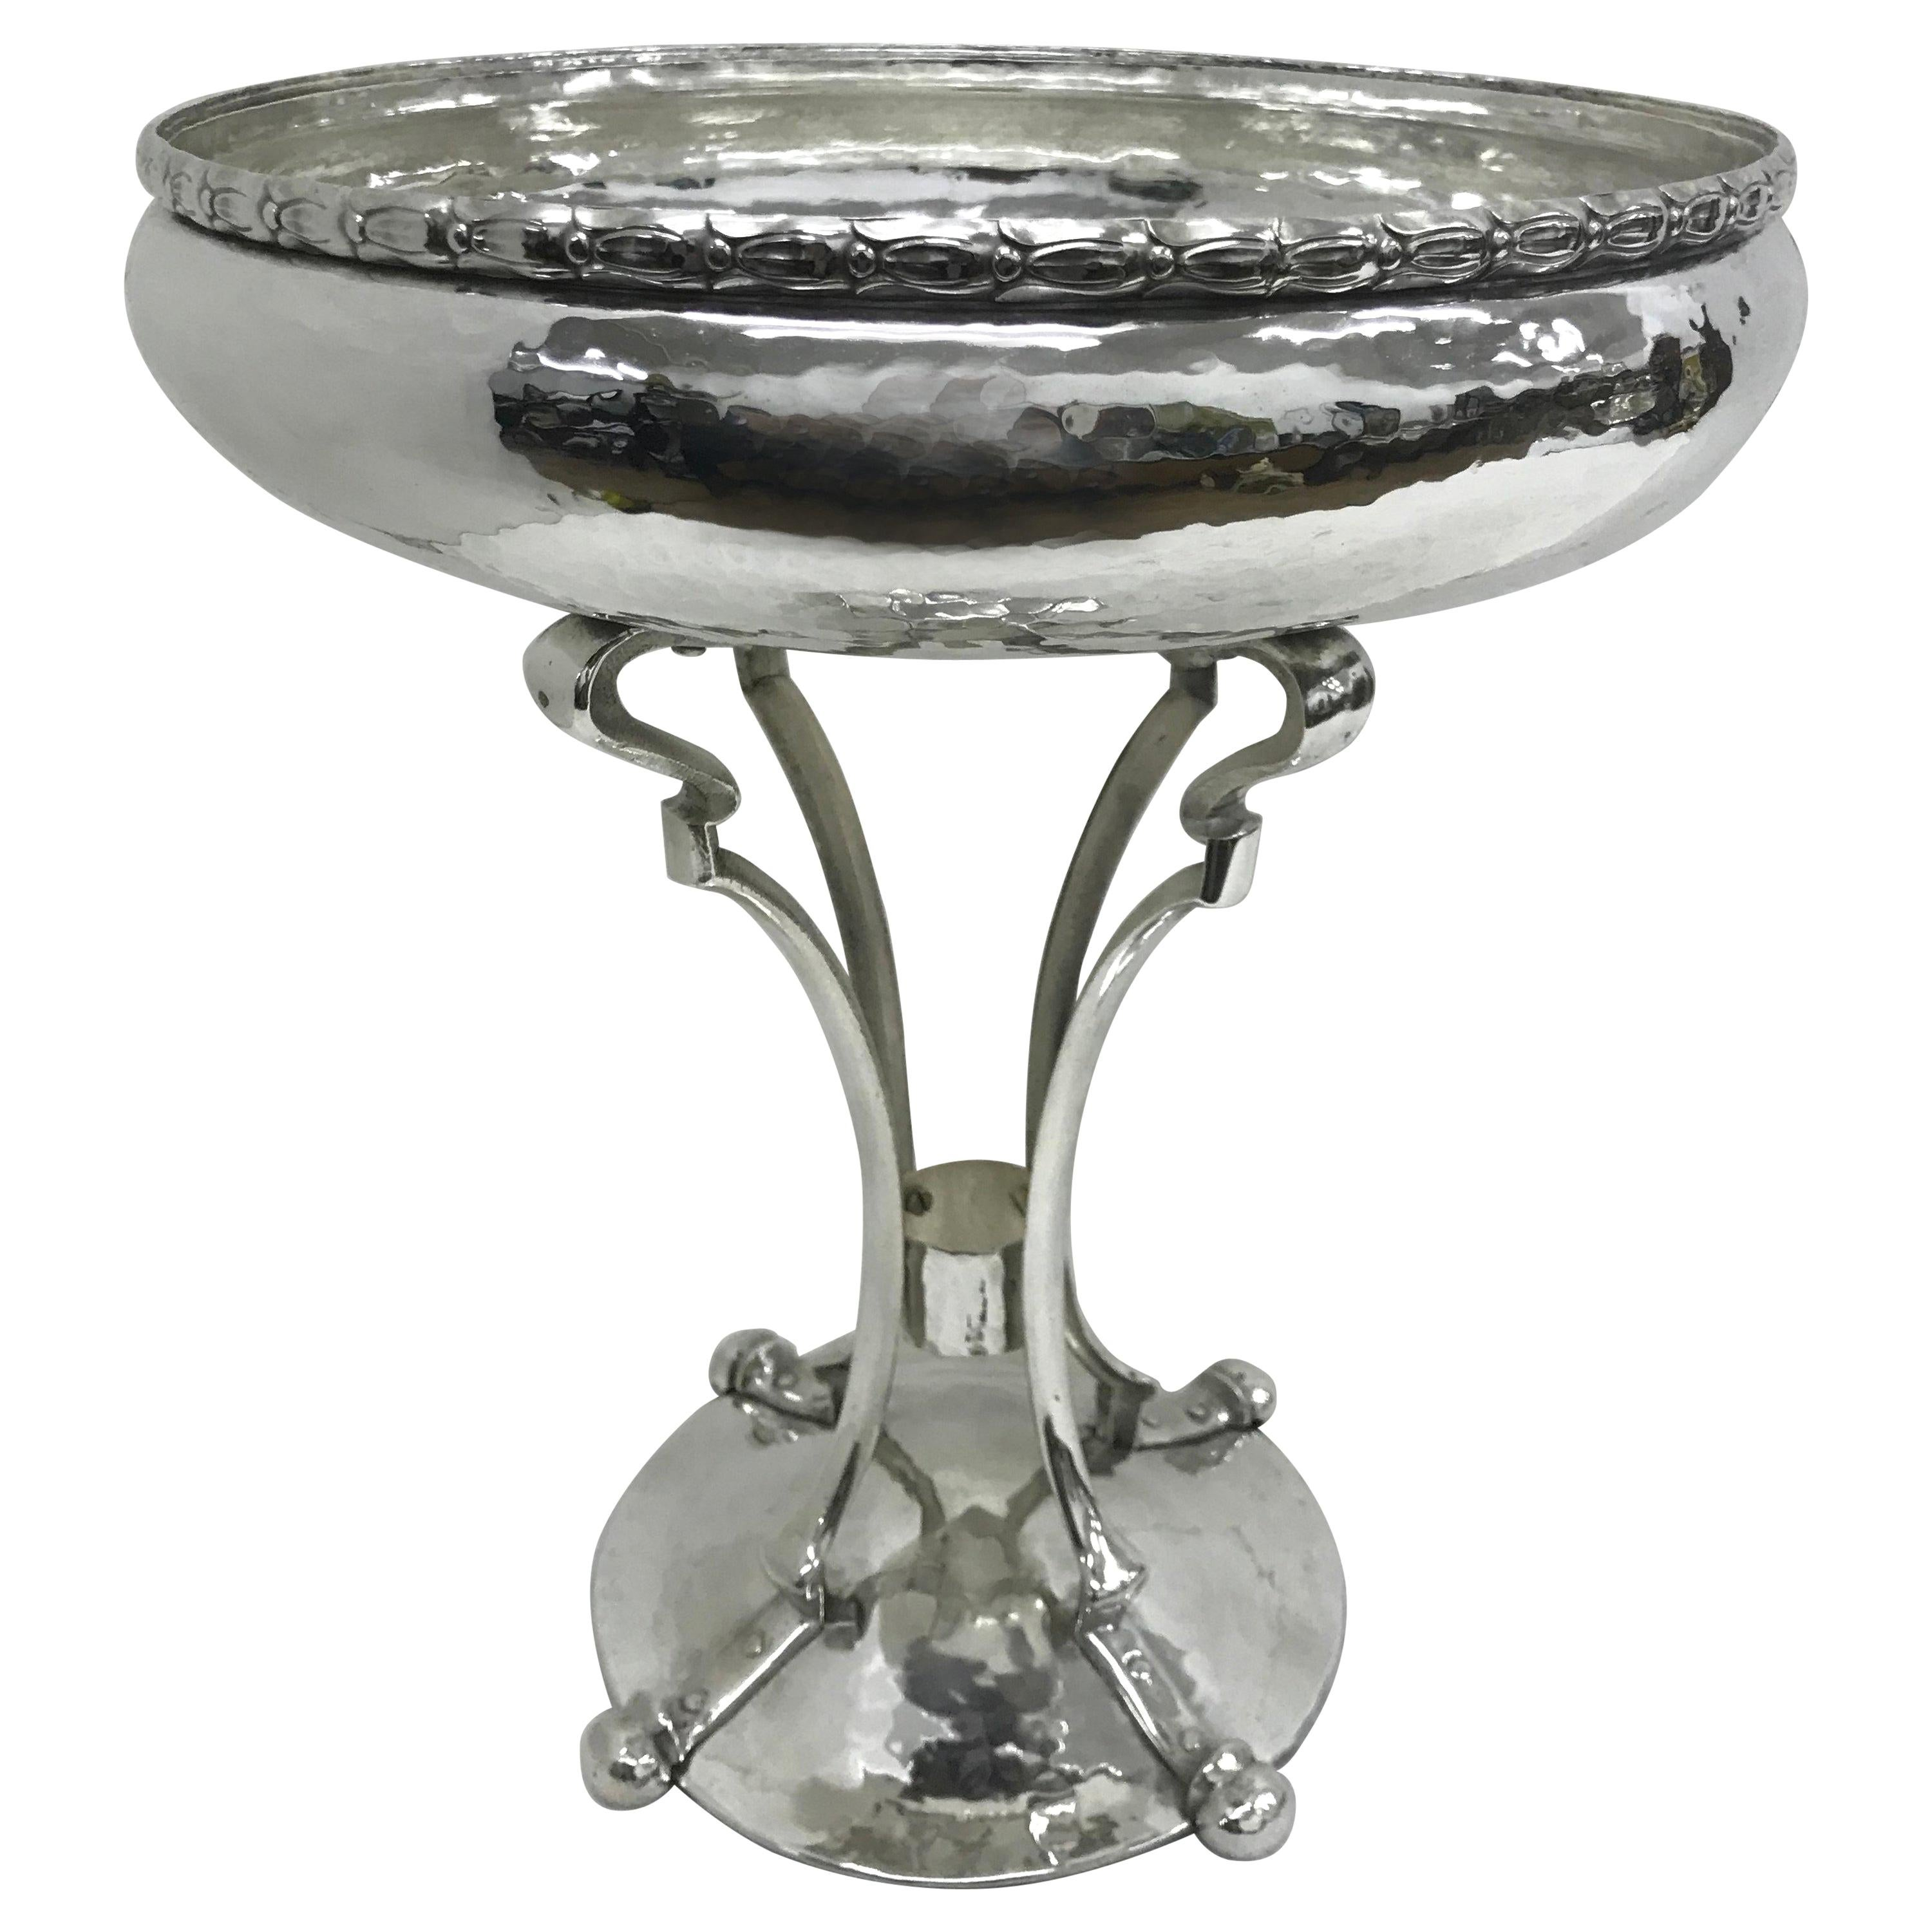 Art Nouveau Hammered Silver Plated English Centerpiece, circa 1900